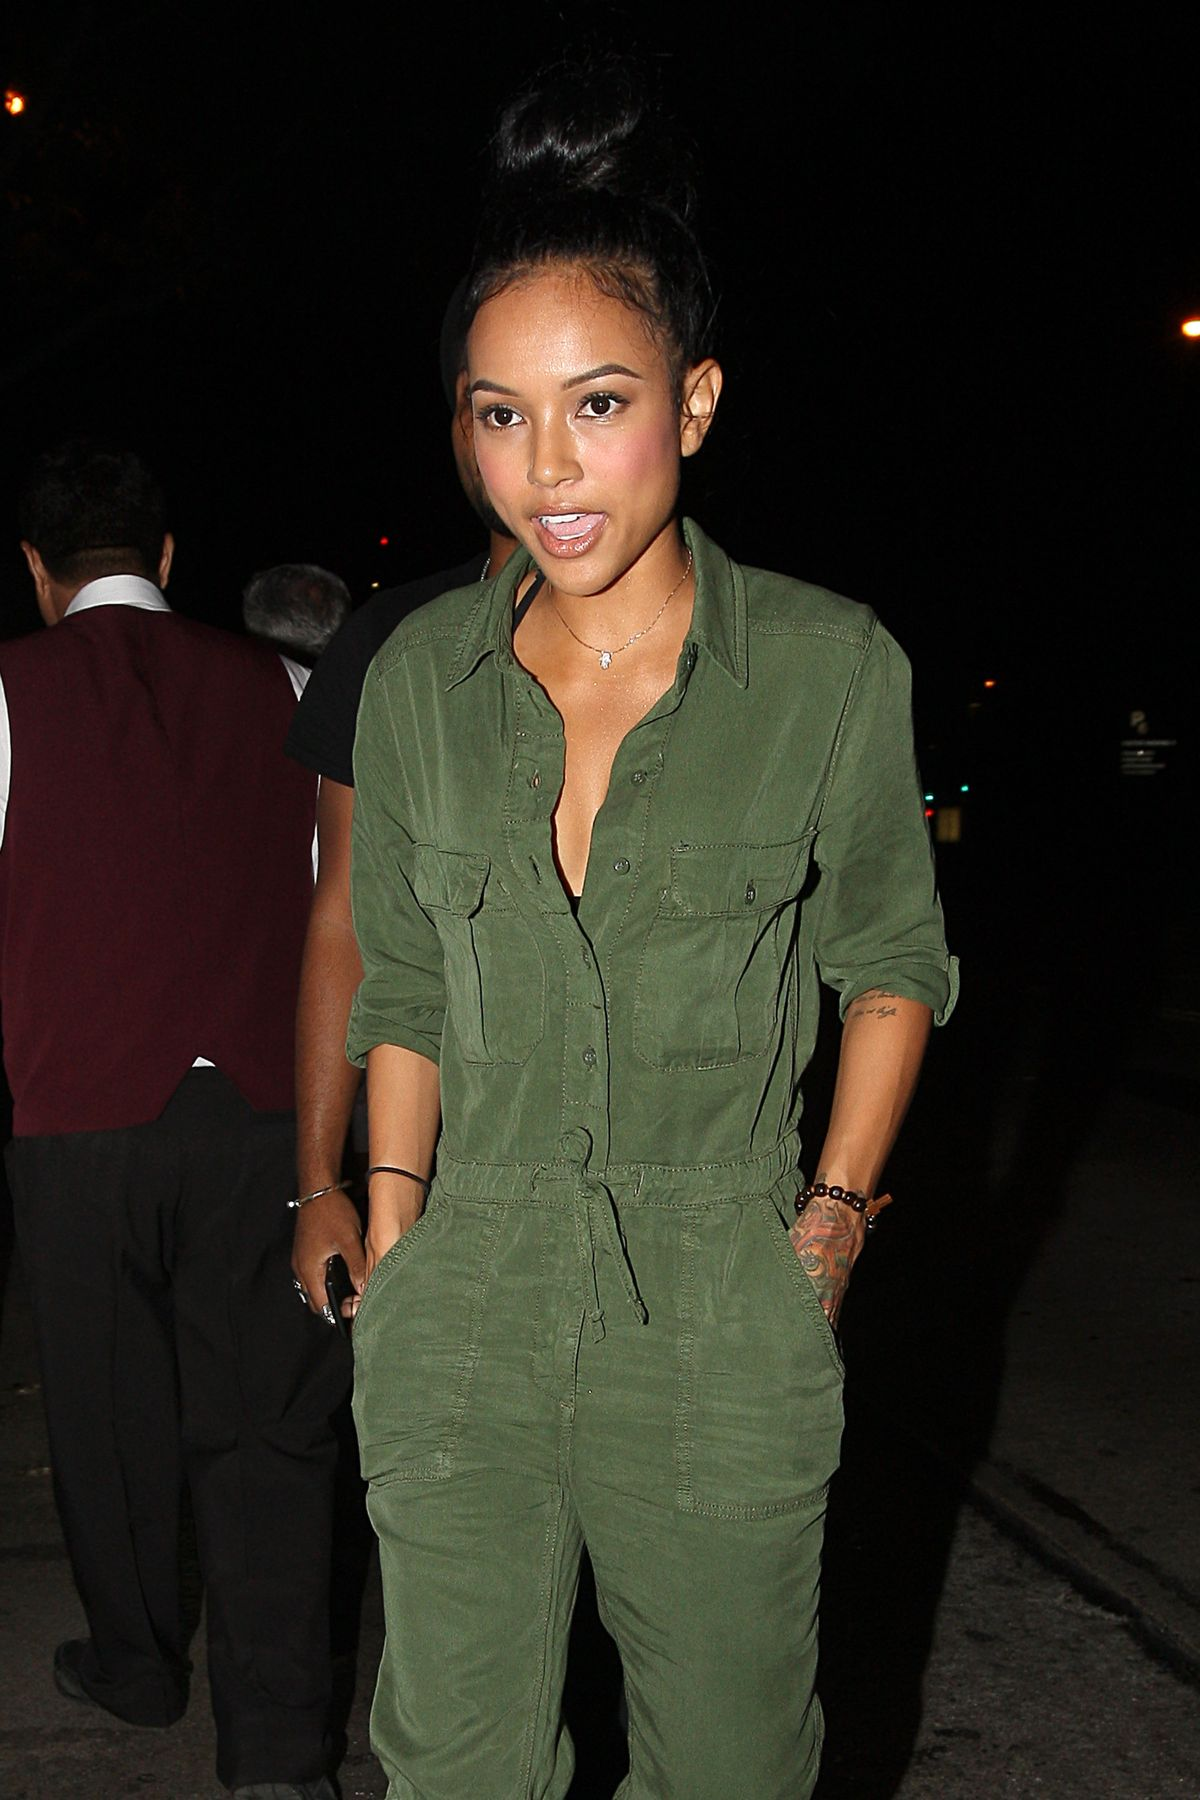 KARREUCHE TRAN Night Out in Los Angeles 06/22/2015